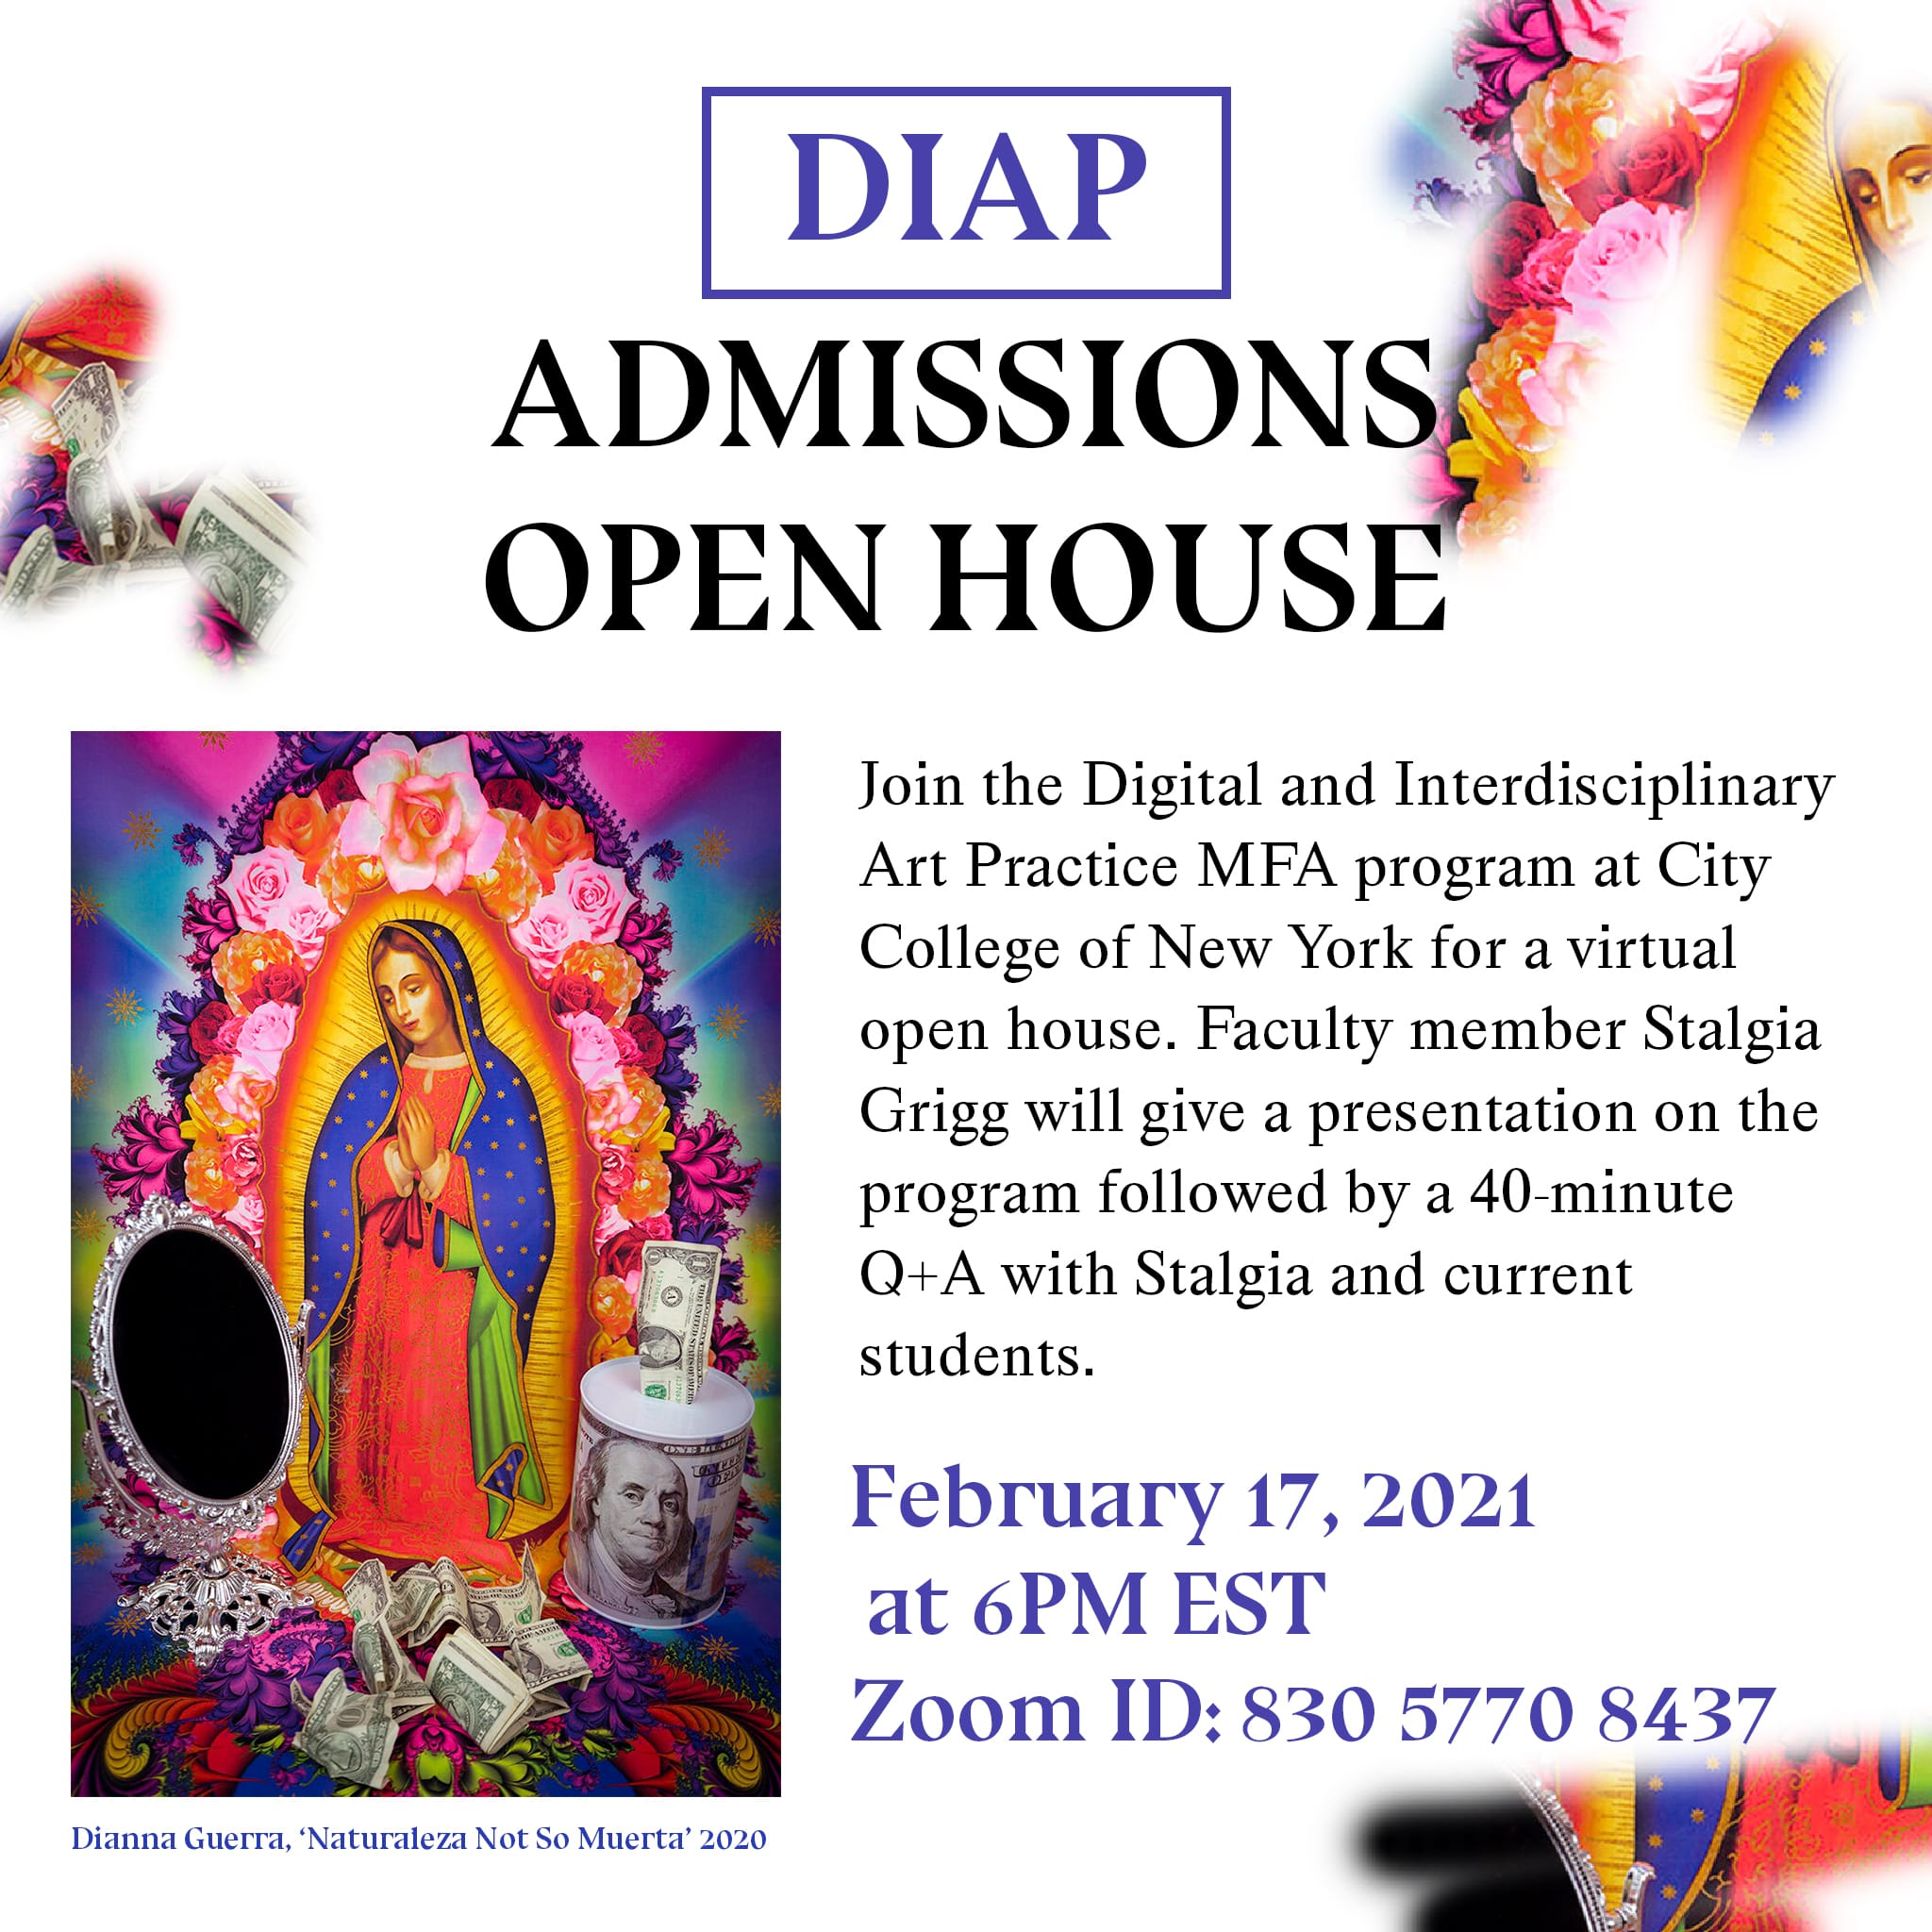 DIAP Open House flyer with info about event happening February 17 2021 at 6PM, image of artwork by Dianna Guerra of a colorful still-life with an image of Mother Mary and US Dollars